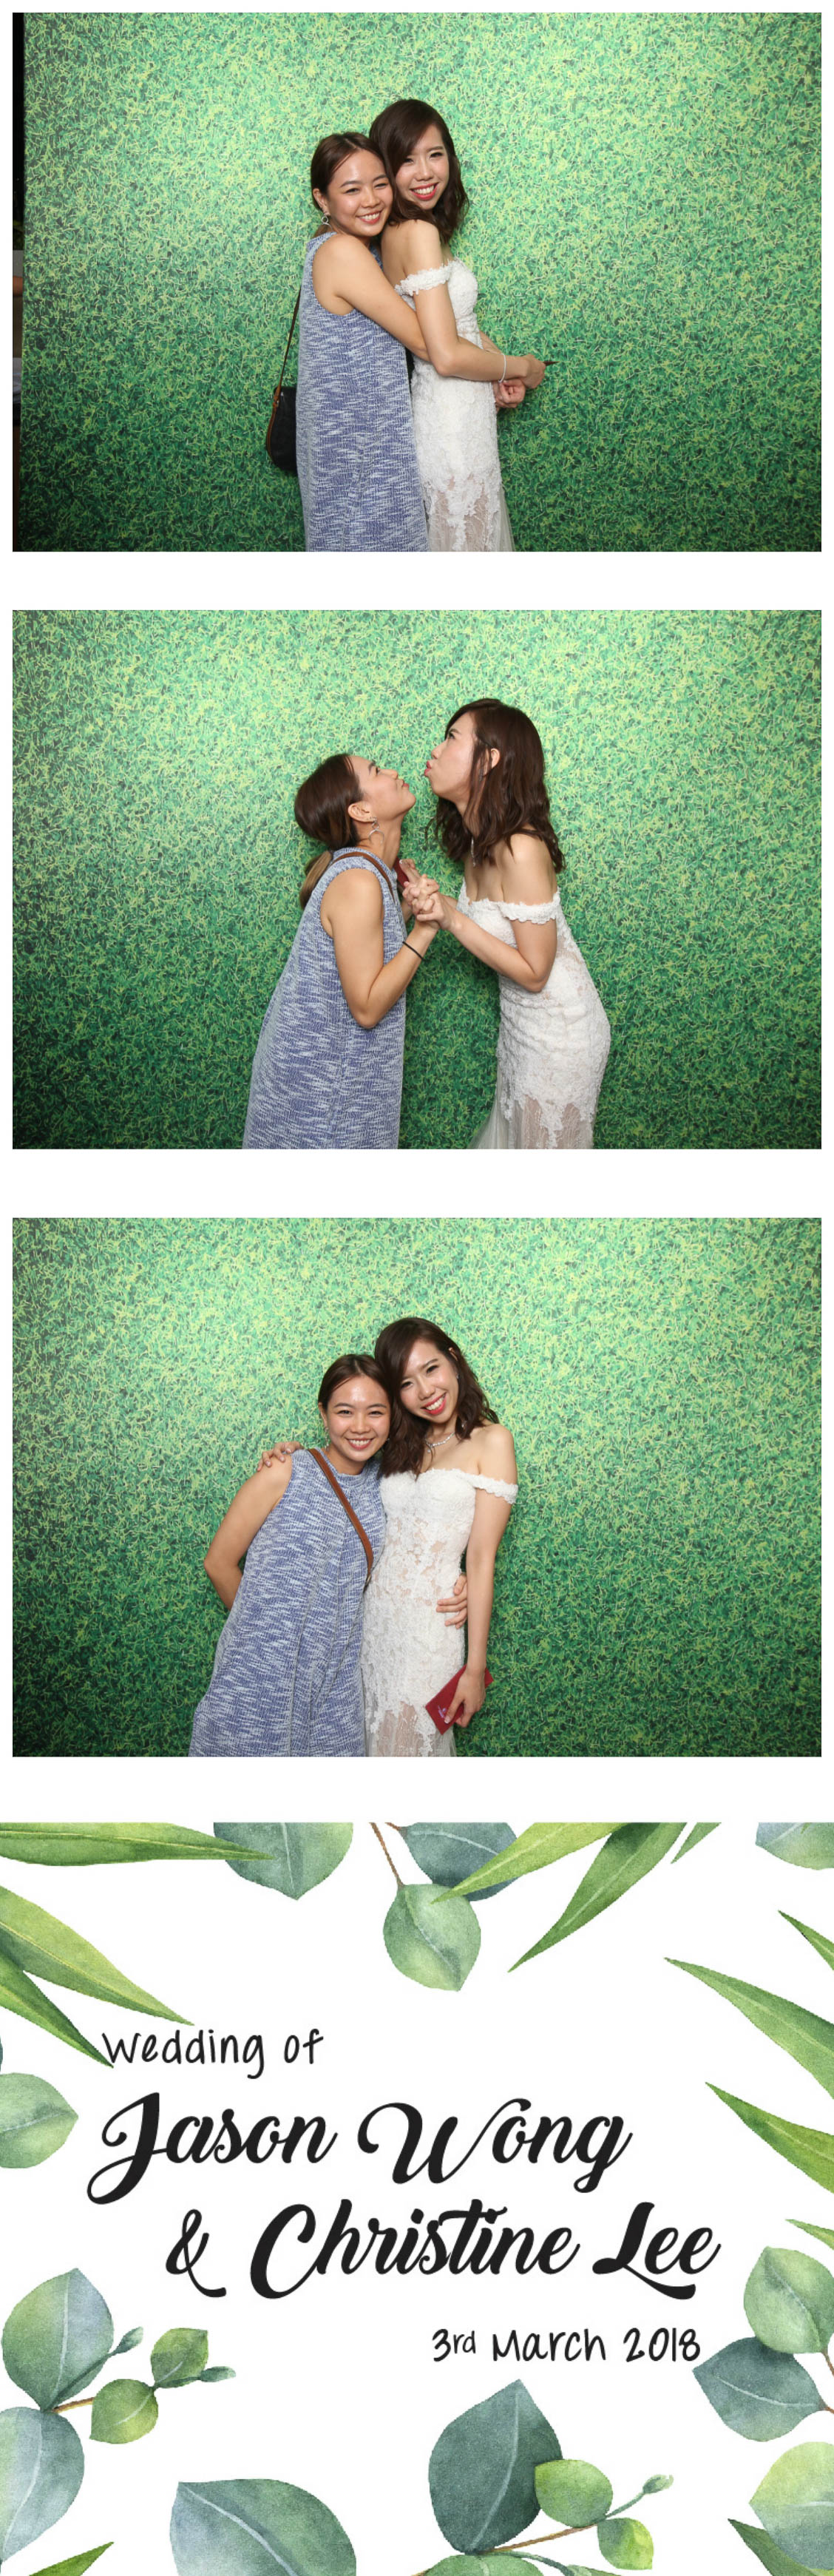 Photobooth 0302-57